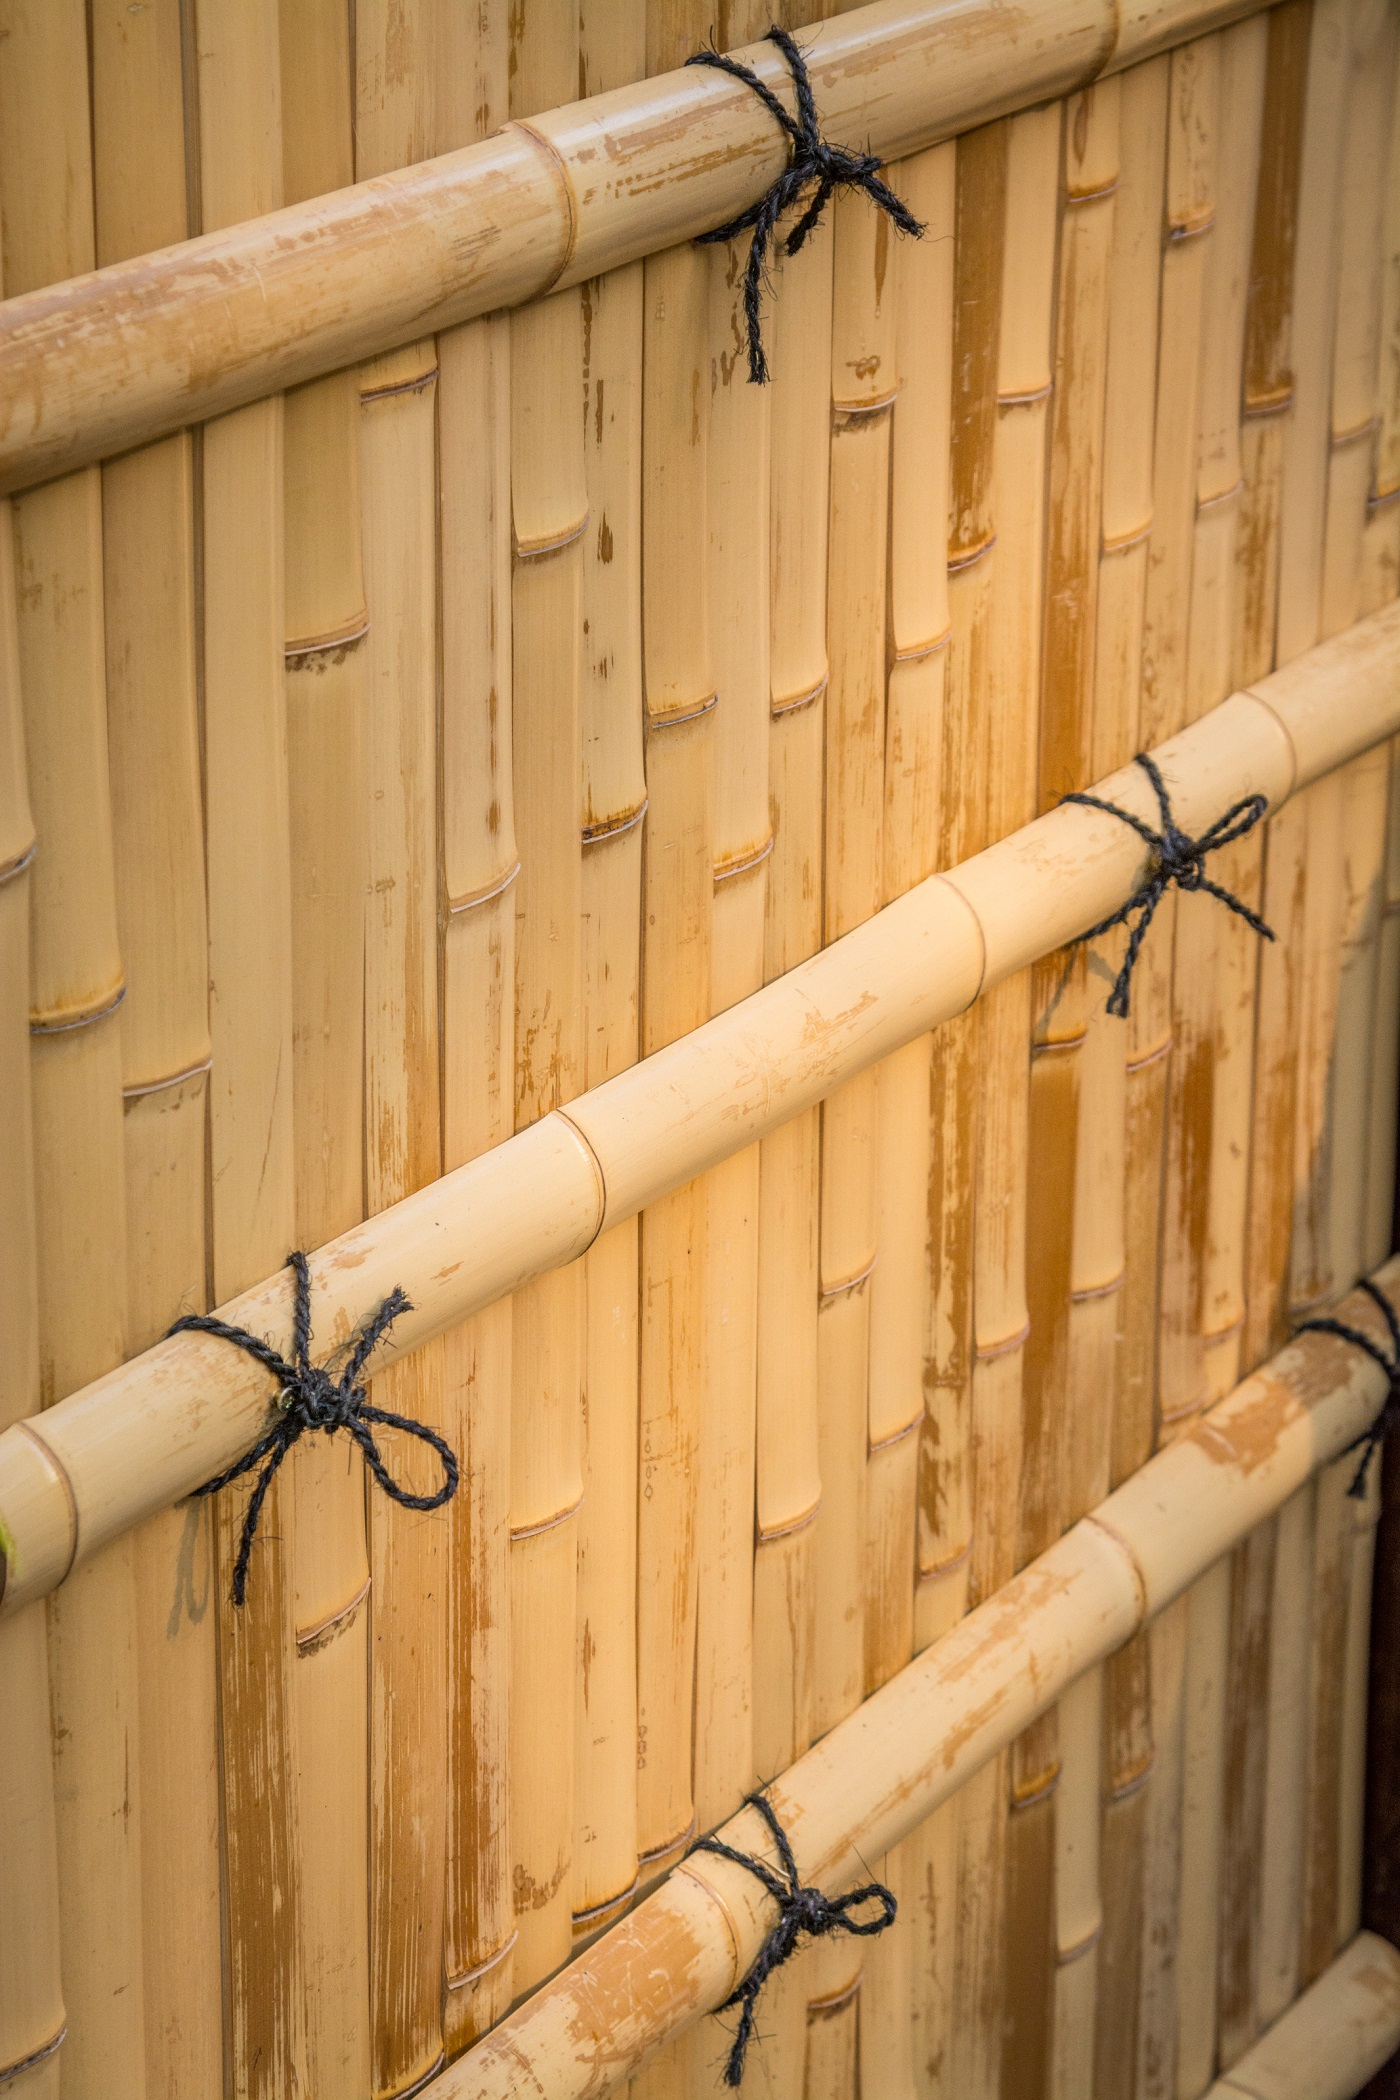 A Kennin-ji style of bamboo fence, created by craftsmen from Miki Bamboo of Kyoto in collaboration with the Portland Japanese Garden's gardening staff, embodies skill in hidden detail.